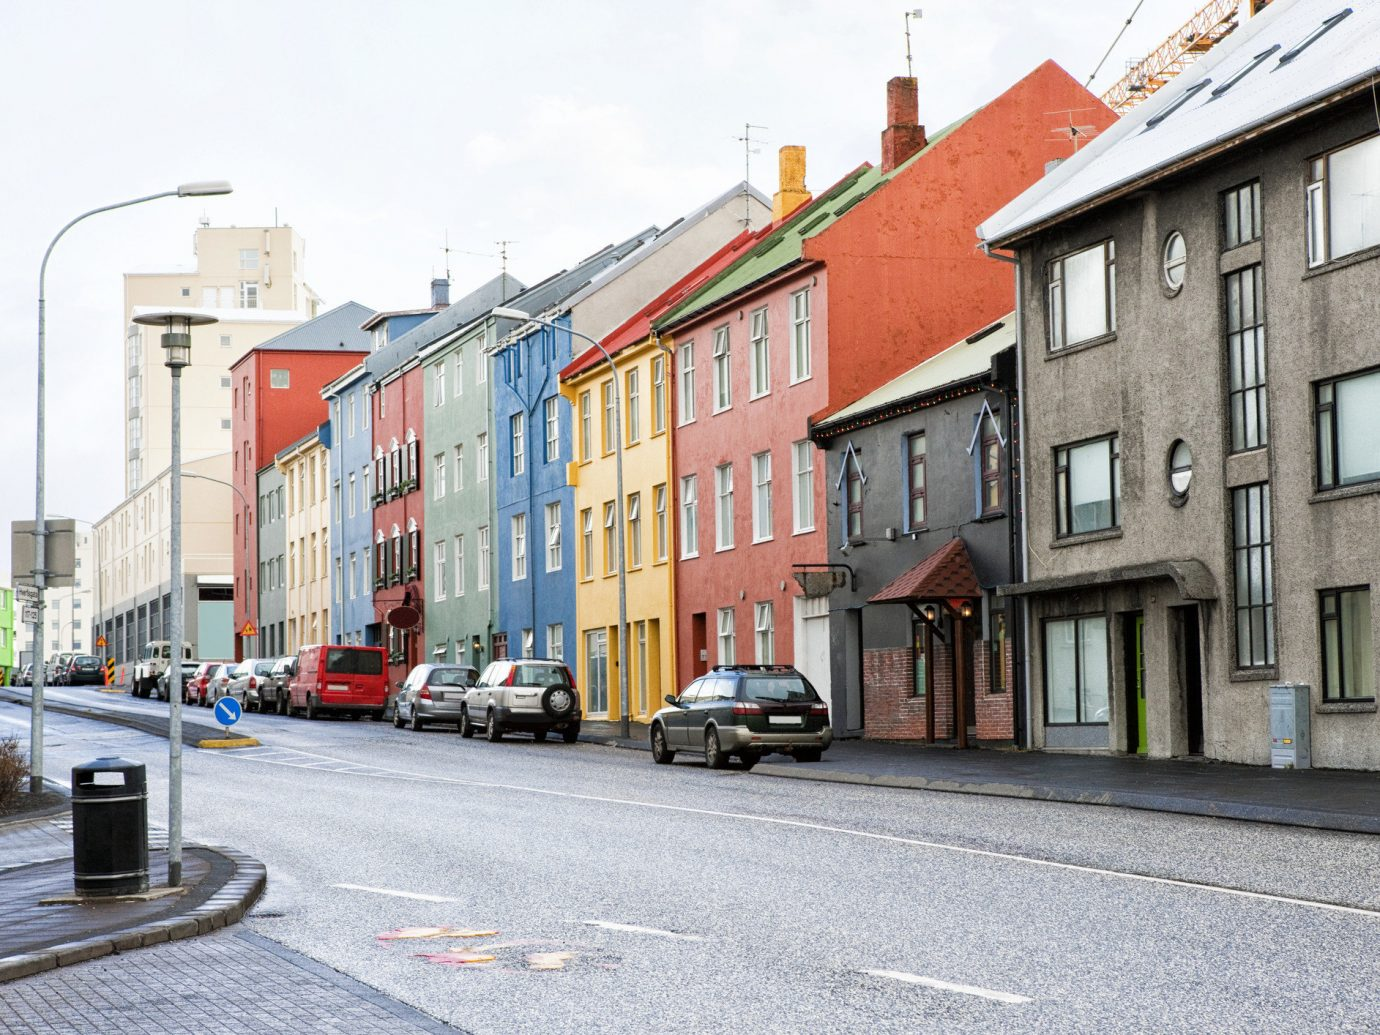 Row of houses in Reykjavik Iceland